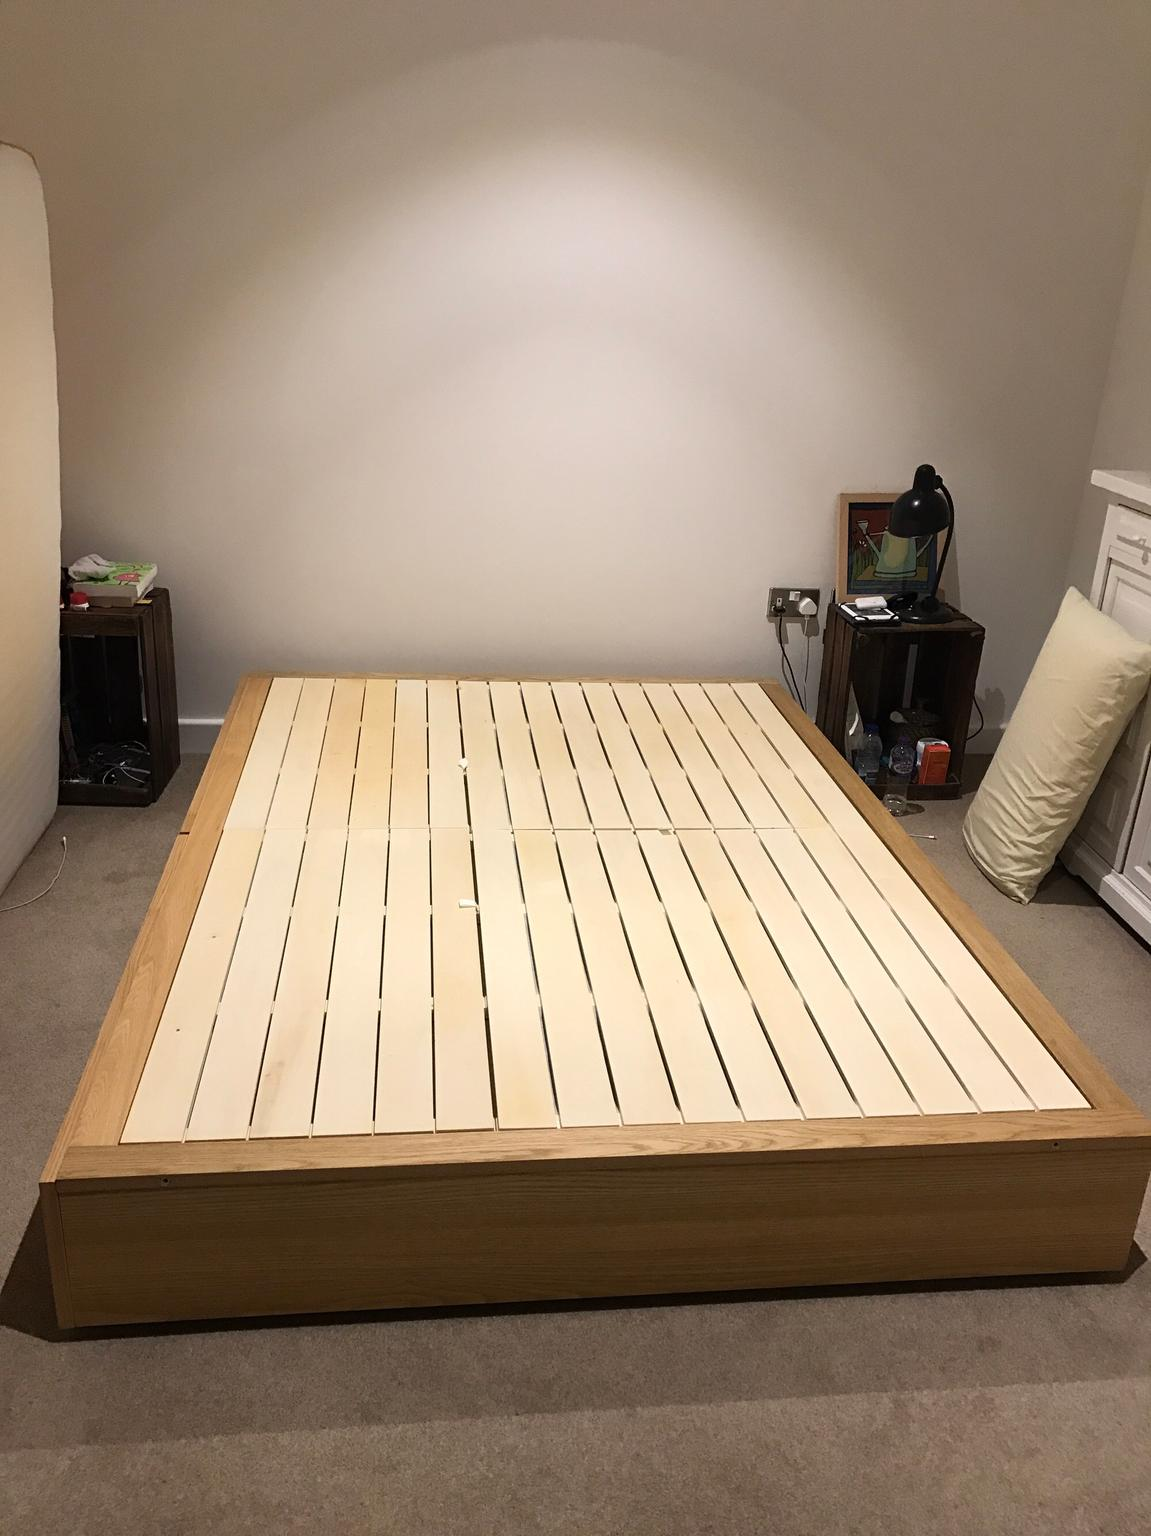 separation shoes 0181c a8291 MUJI Oak Storage Bed - Double (as new)